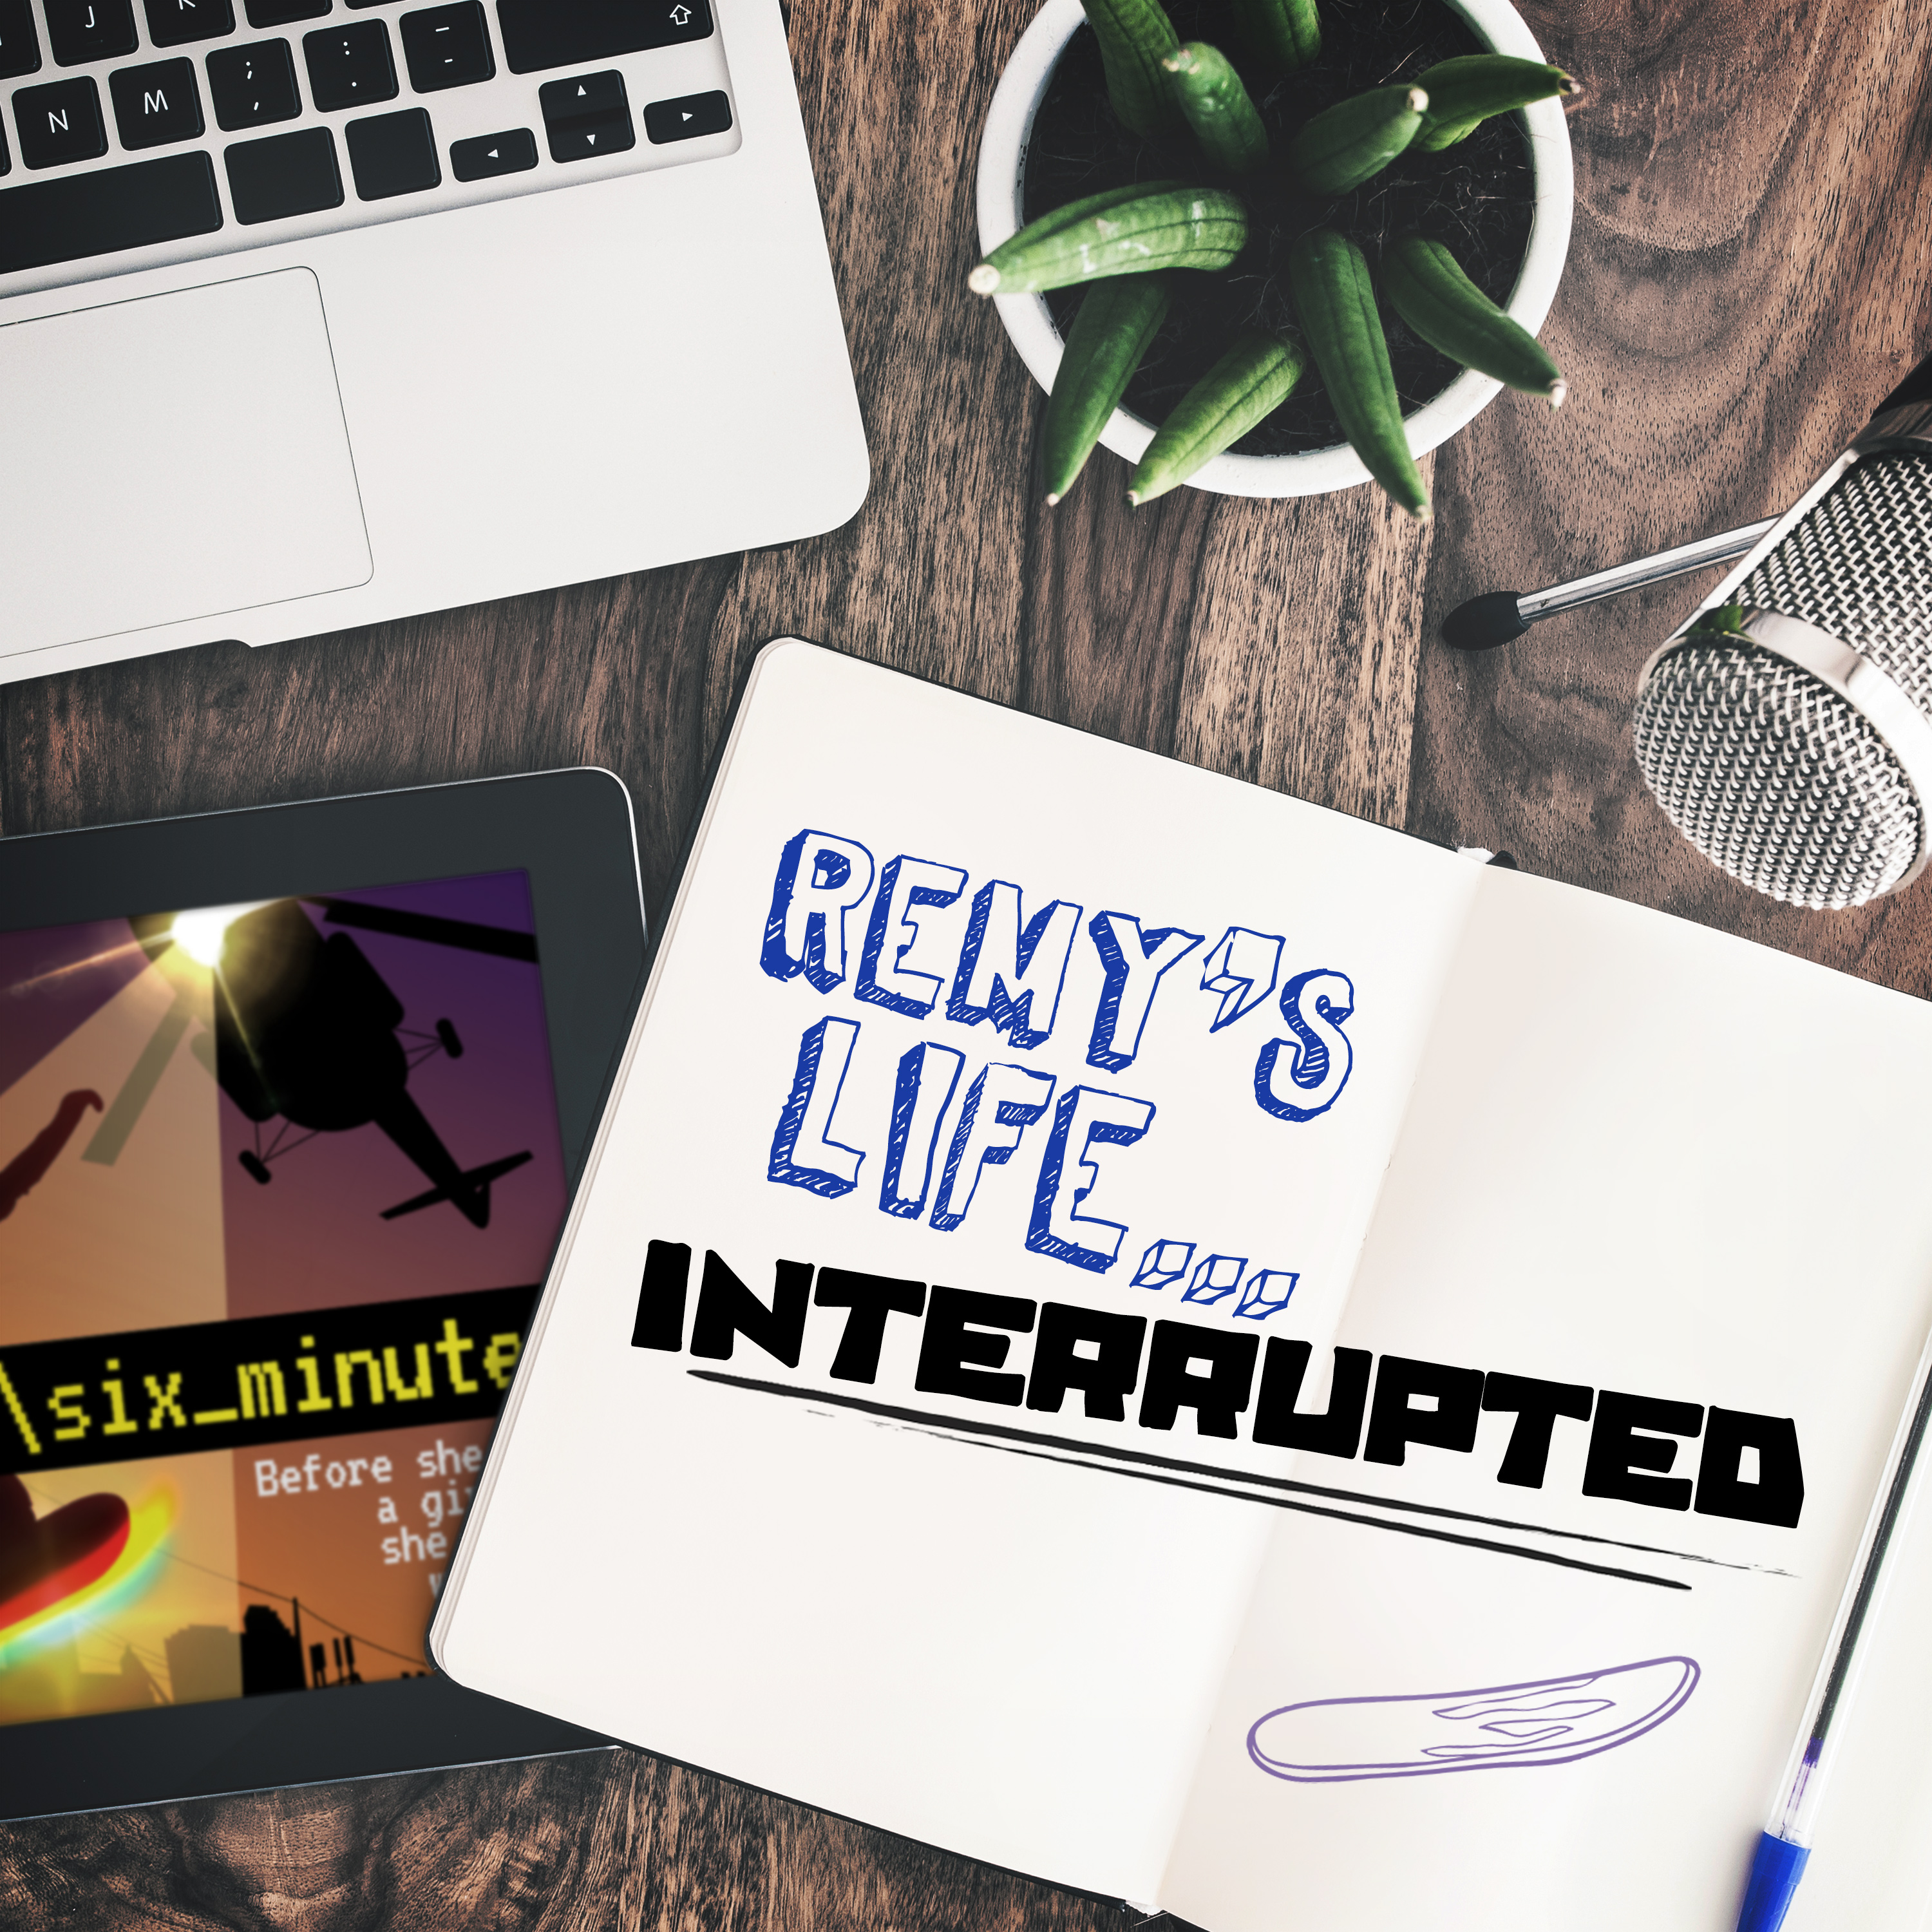 Remy's Life Interrupted: EP82